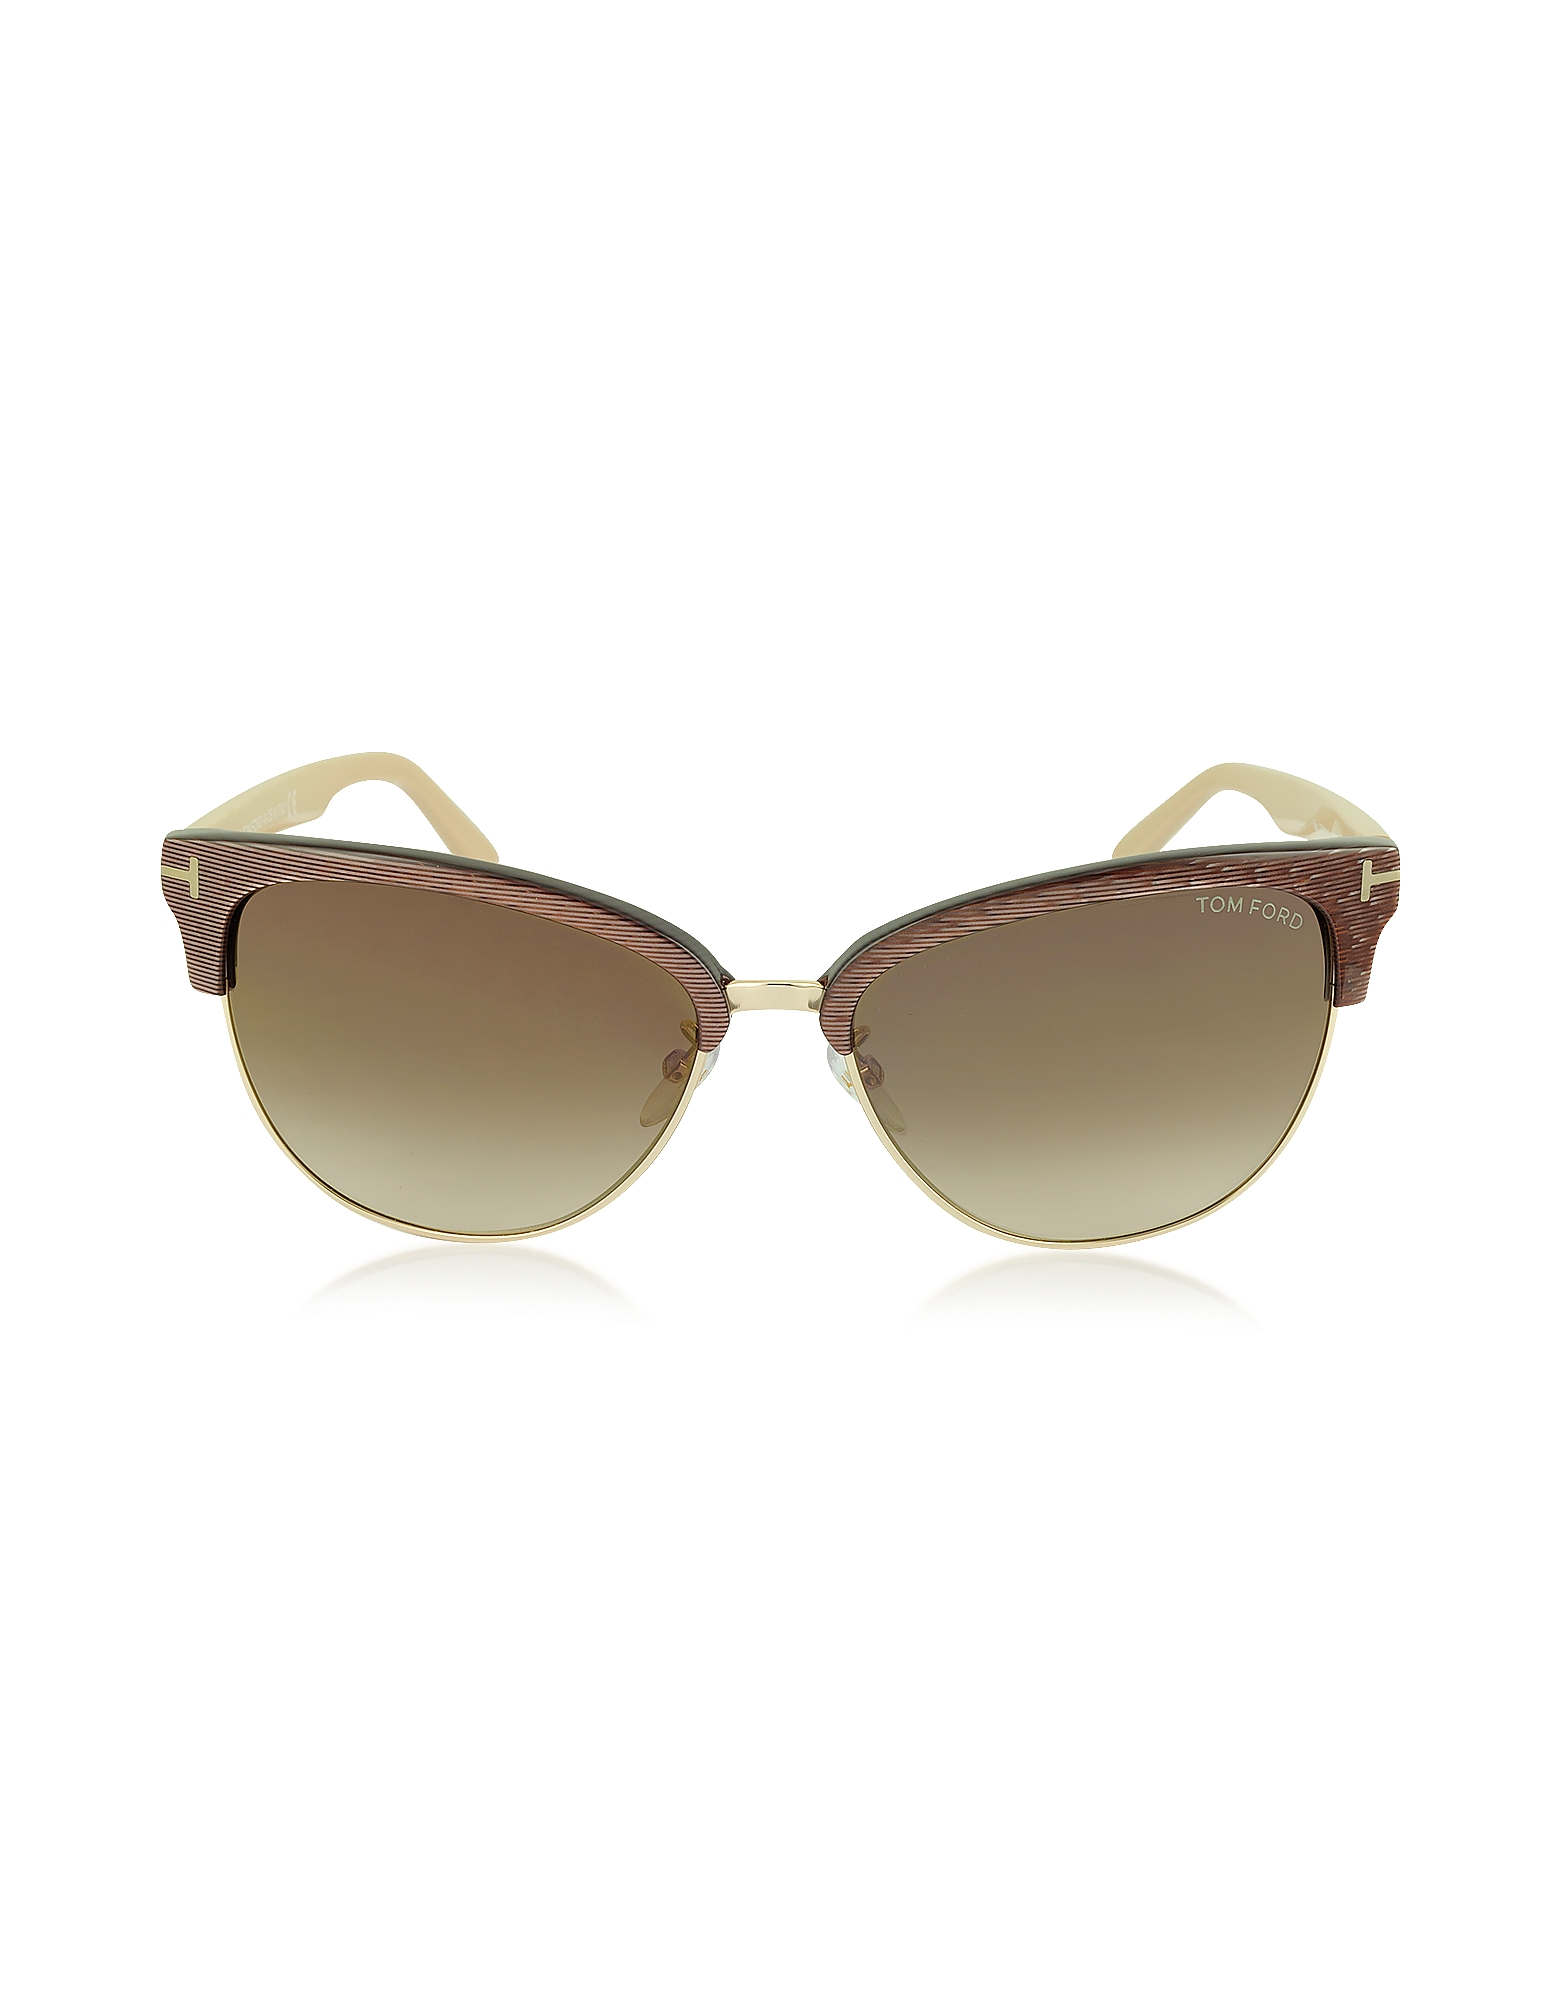 Tom Ford Sunglasses, FANY FT0368 50G Brown Acetate and Gold Metal Cat Eye Sunglasses